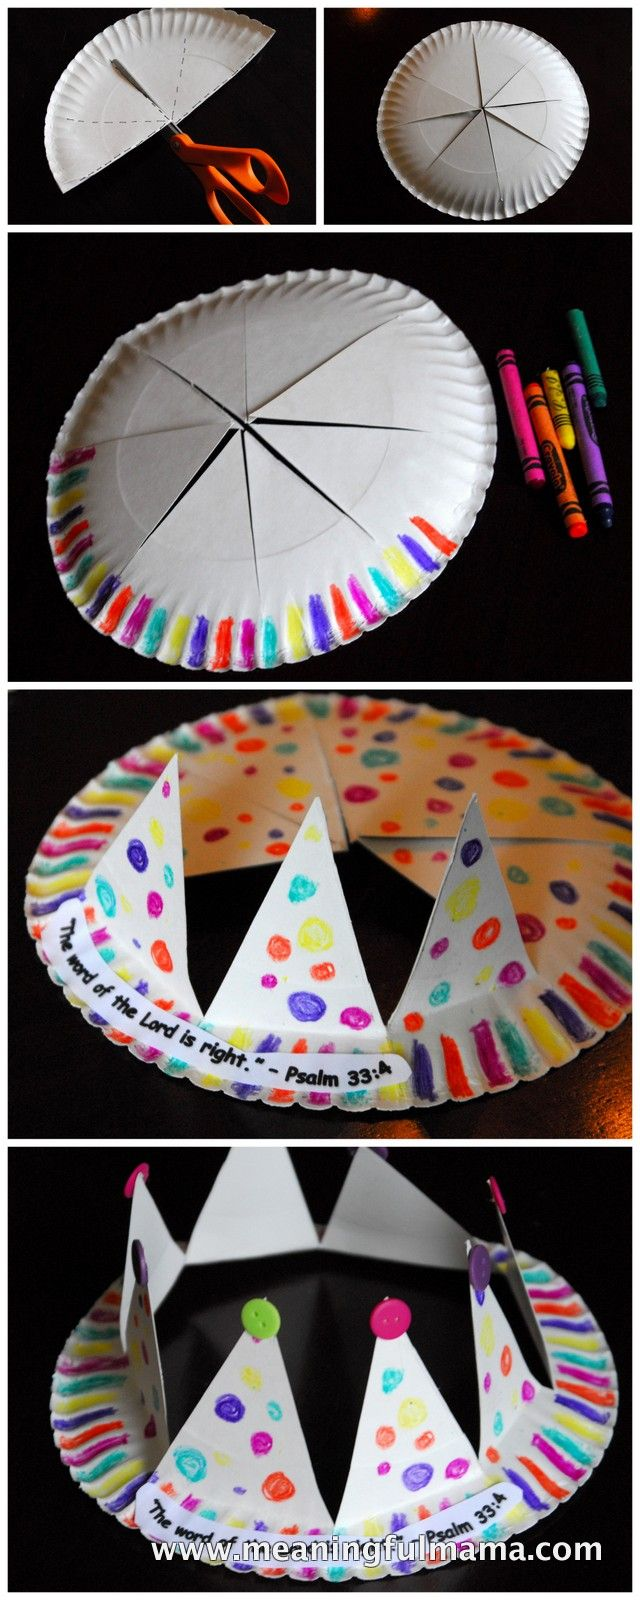 Paper Plate Crown - AWANA Cubbies Bear Hug Craft #10 - Meaningfulmama.com